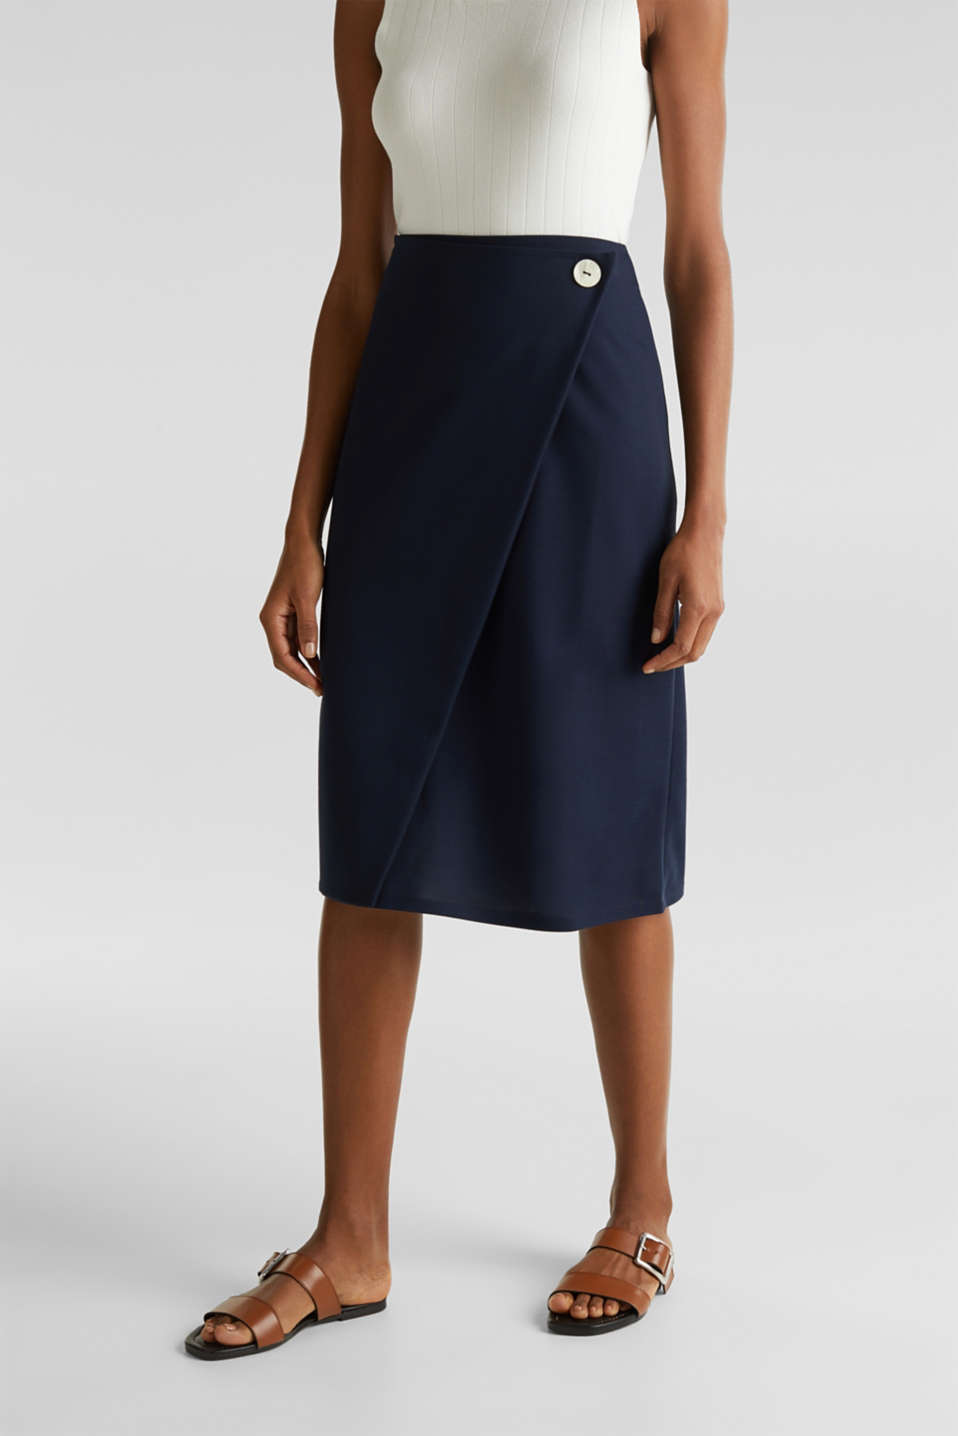 Esprit - Stretch jersey skirt with a wrap-over effect